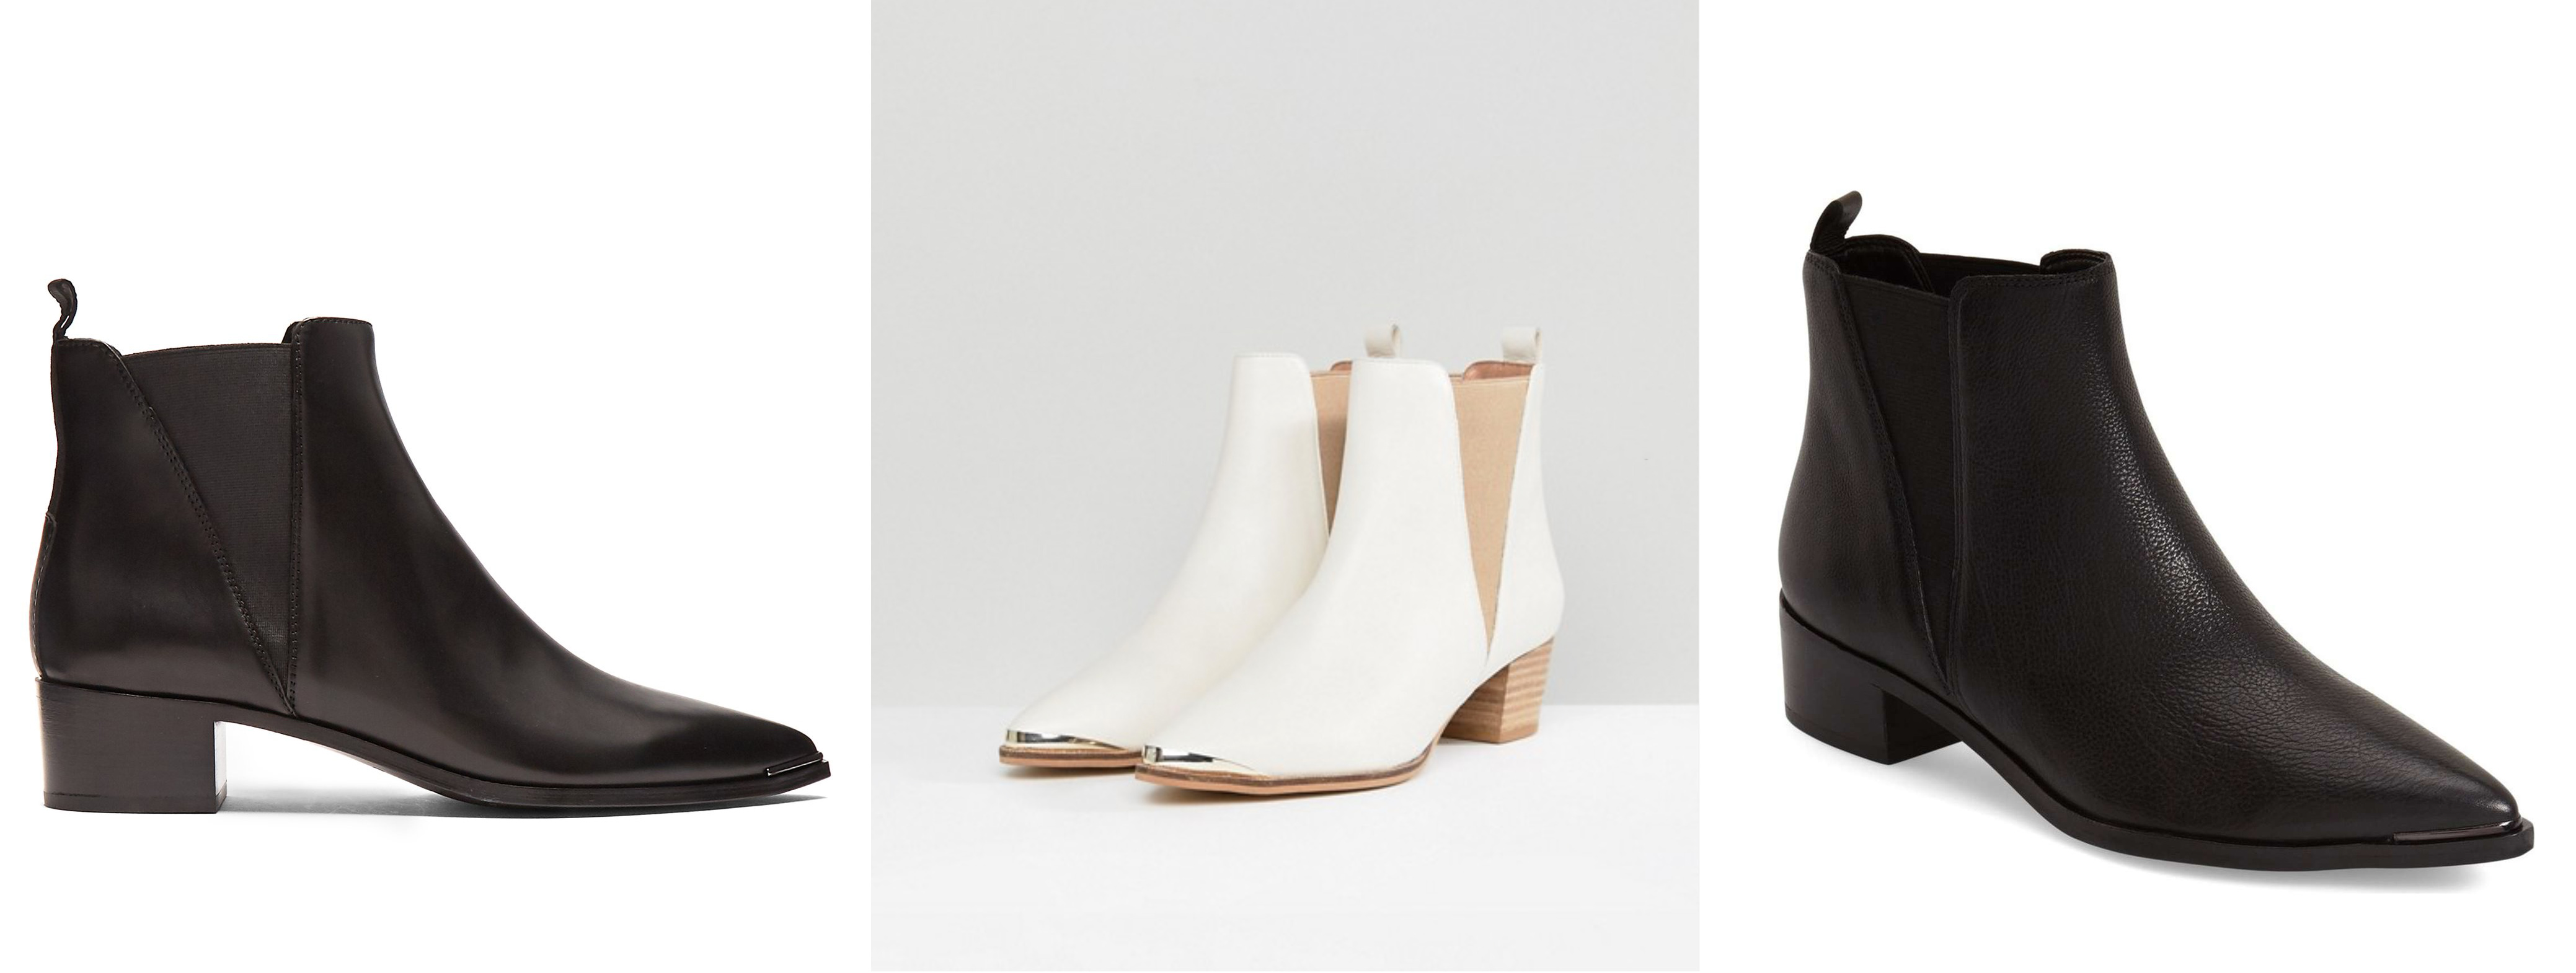 ee8898771d Designer Shoe Dupes: Get the Luxe Look for Less | Mademoiselle | A ...